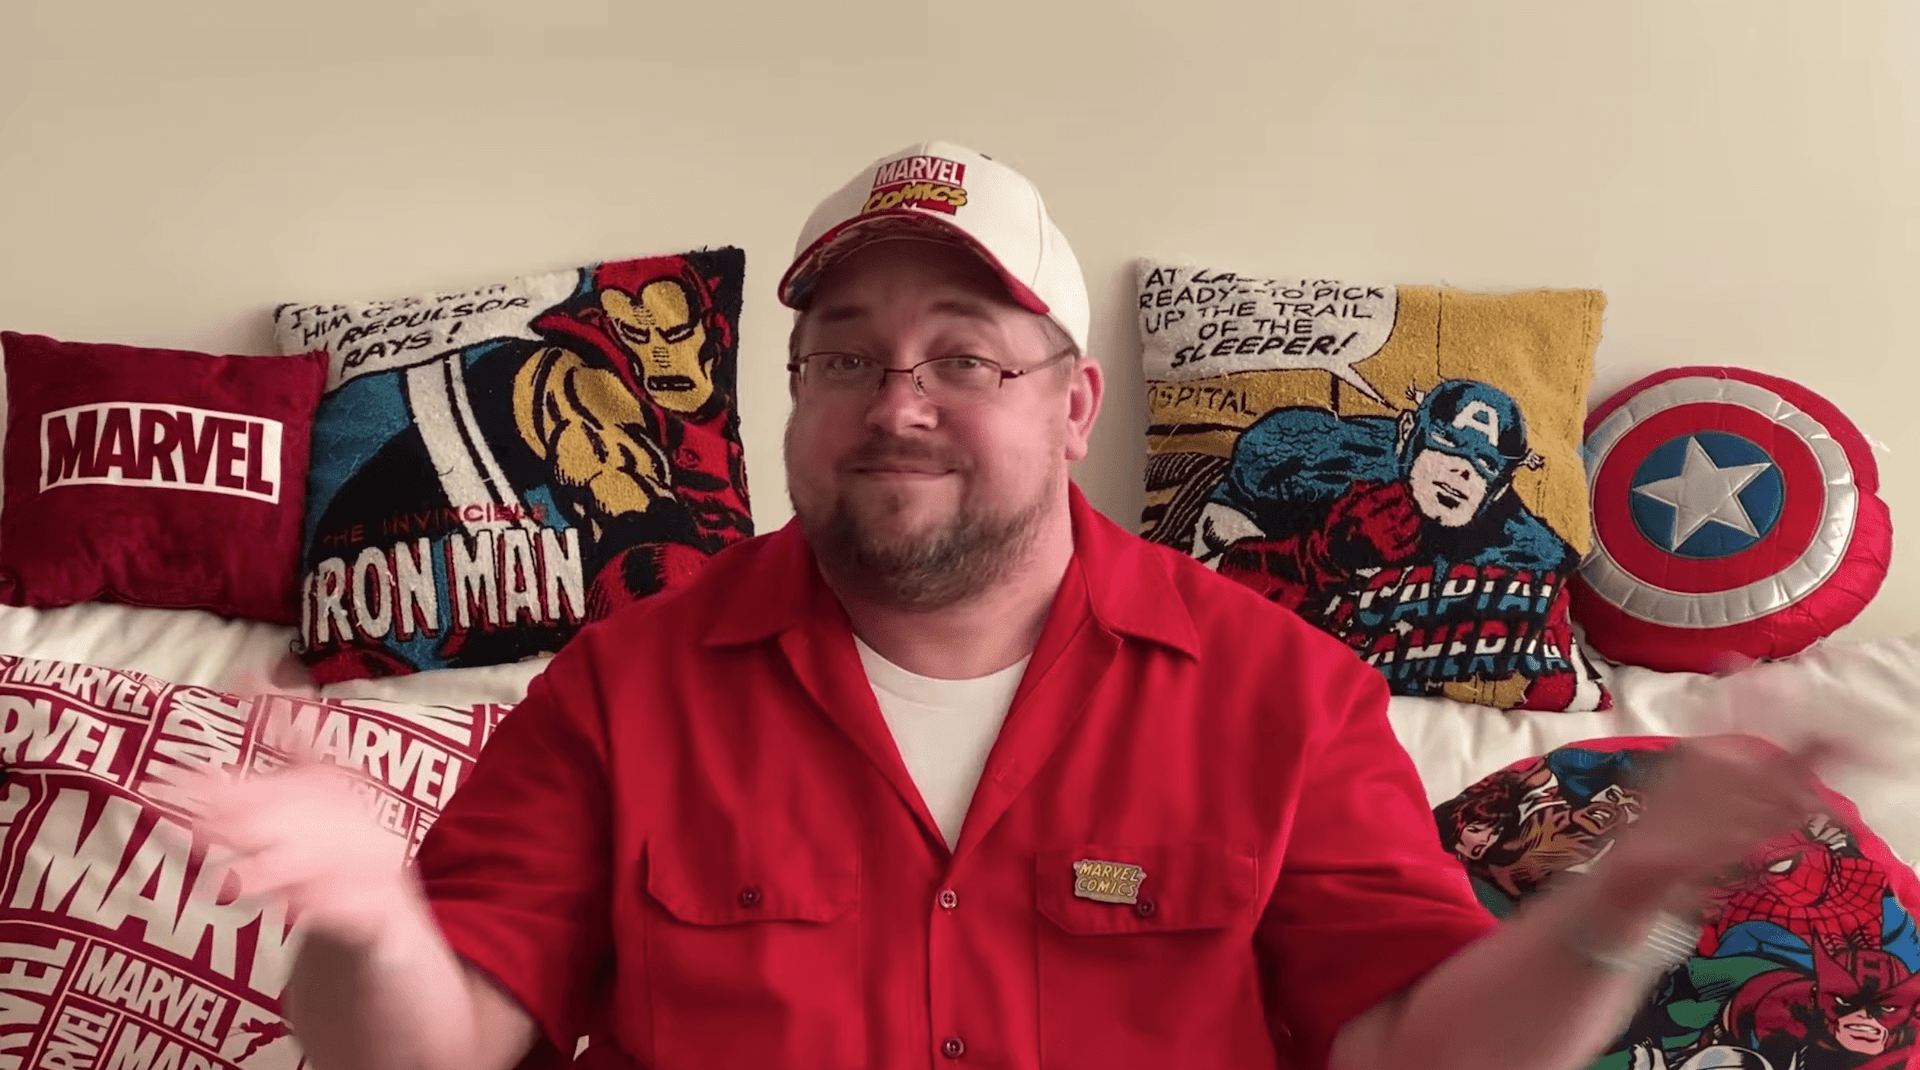 Marvel Comics' top brass takes to social media to share in celebrating Marvel's return to comic shops today